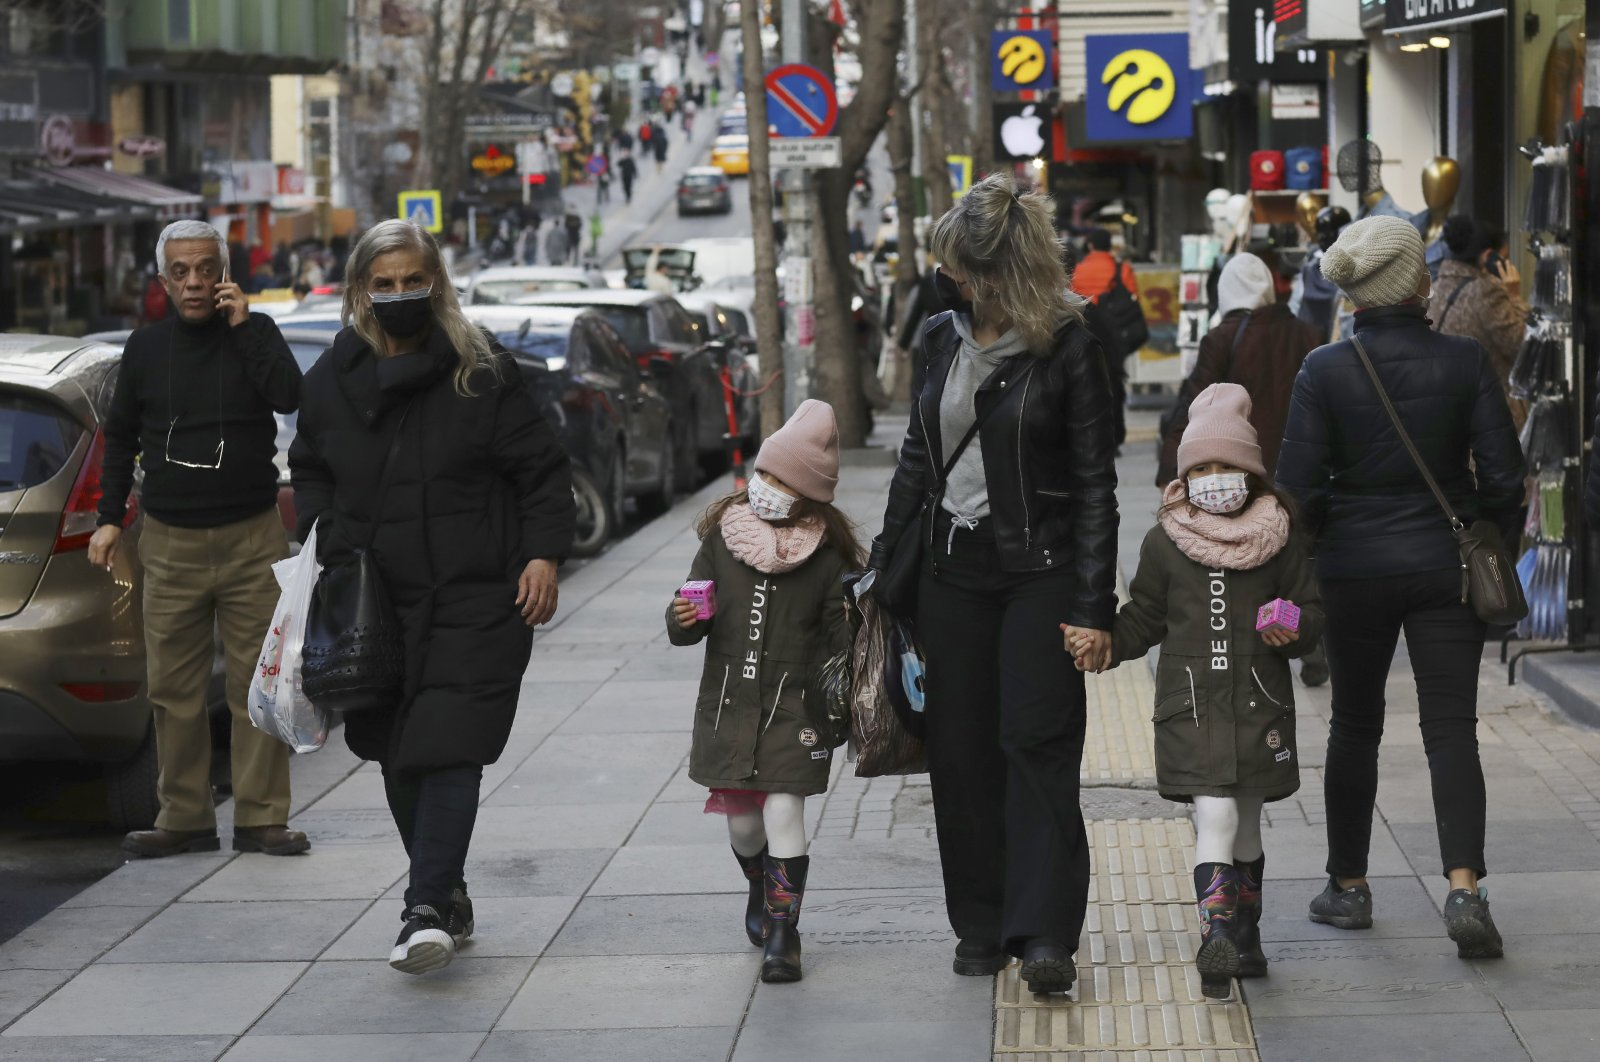 People with face masks walk along a busy street in Ankara, Turkey, March 2, 2021. (AP Photo)